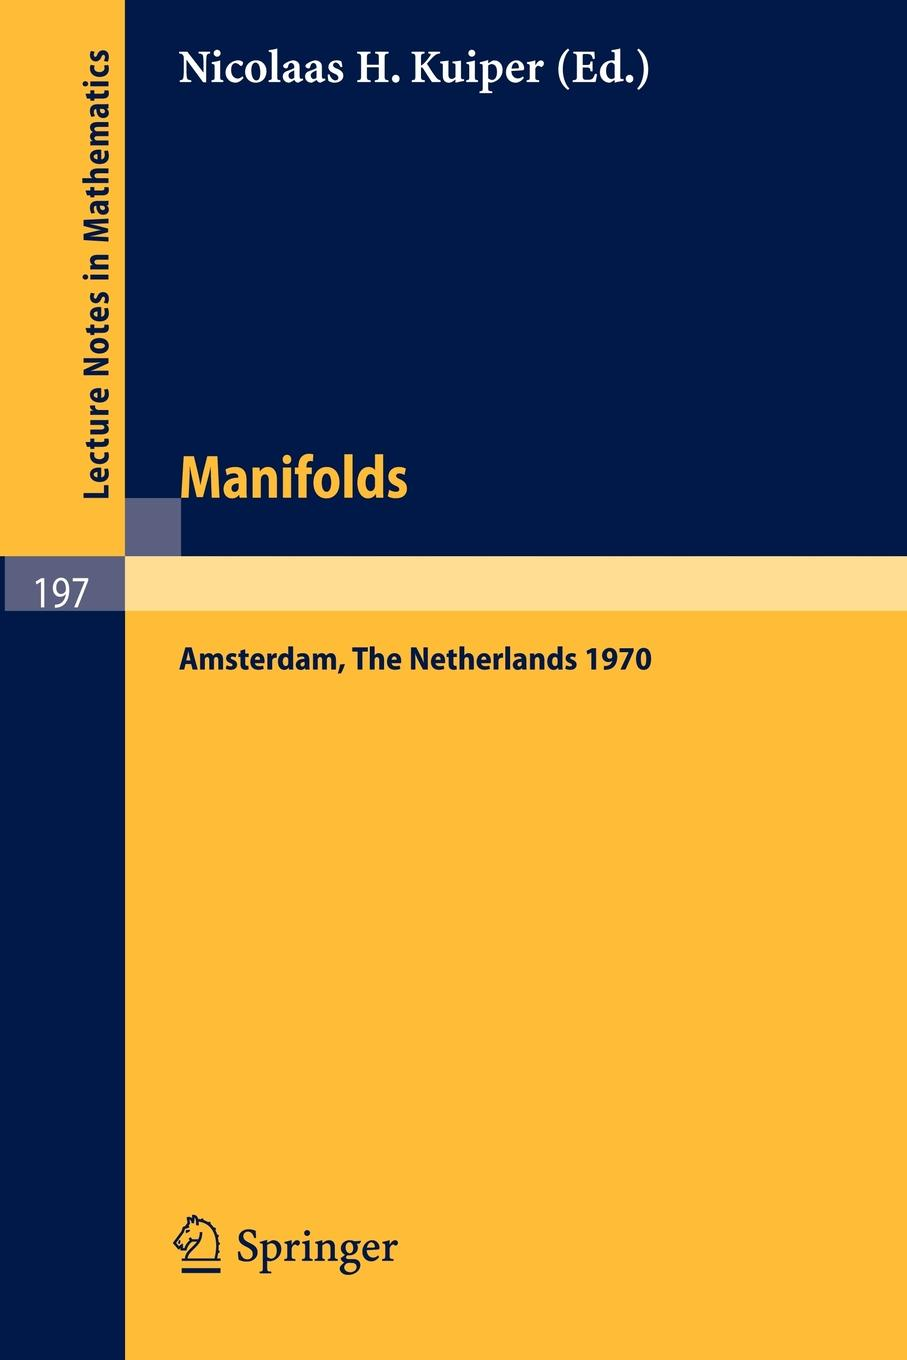 Manifolds - Amsterdam 1970. Proceedings of the Nuffic Summer School on Manifolds Amsterdam, August 17 - 29, 1970 sigala amsterdam